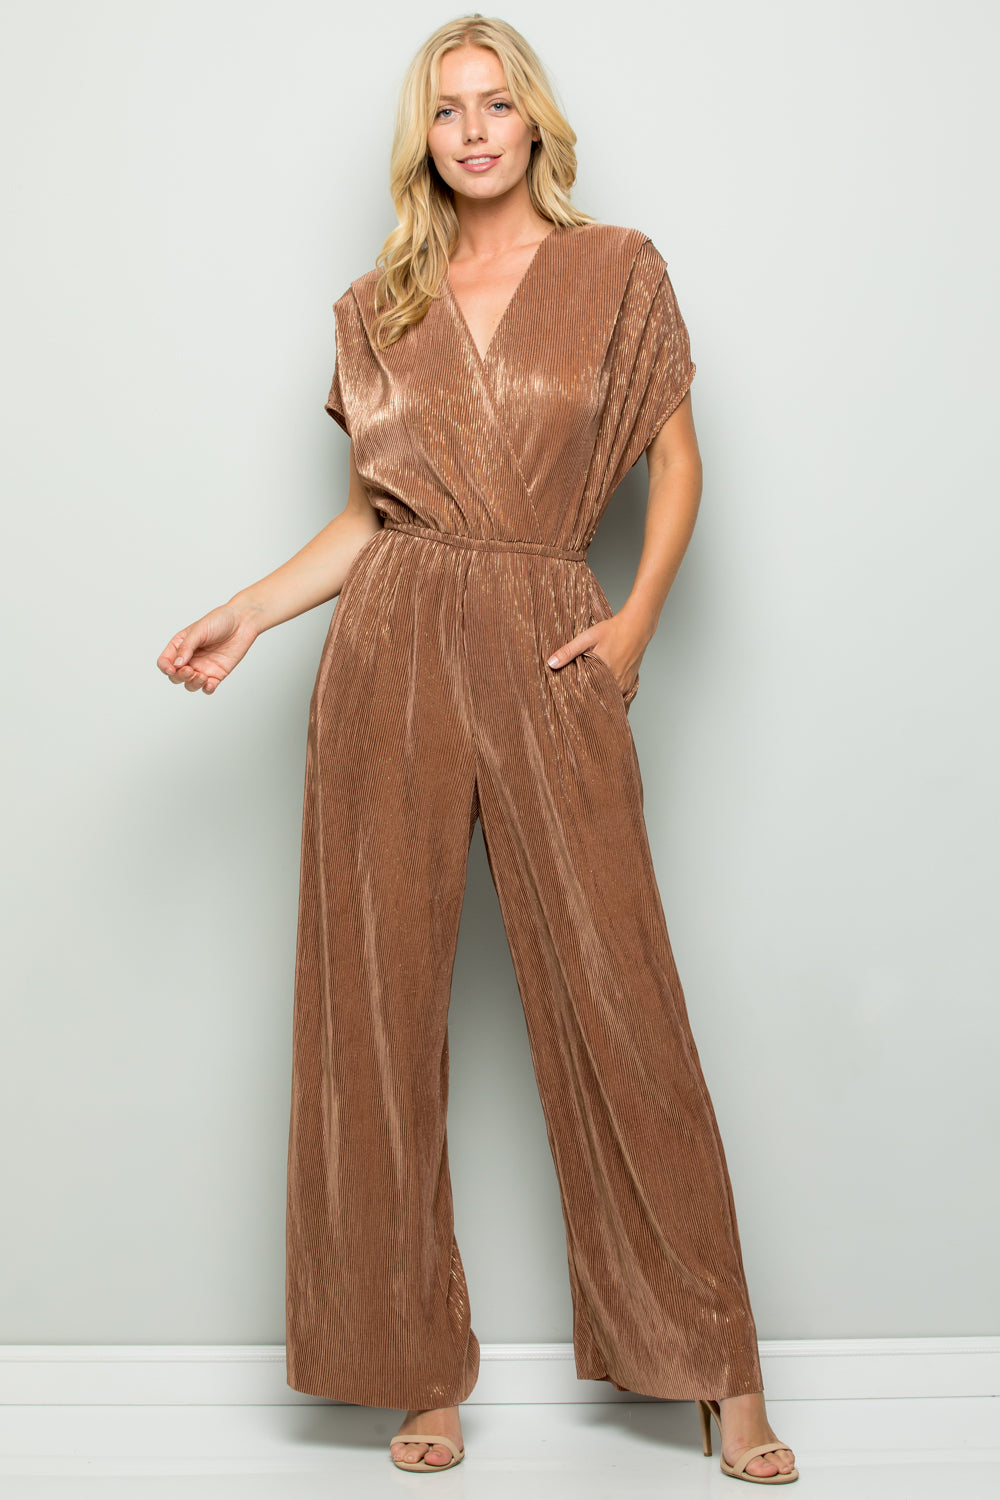 D5111 Metallic Pleats Jumpsuit - BRONZE/GOLD